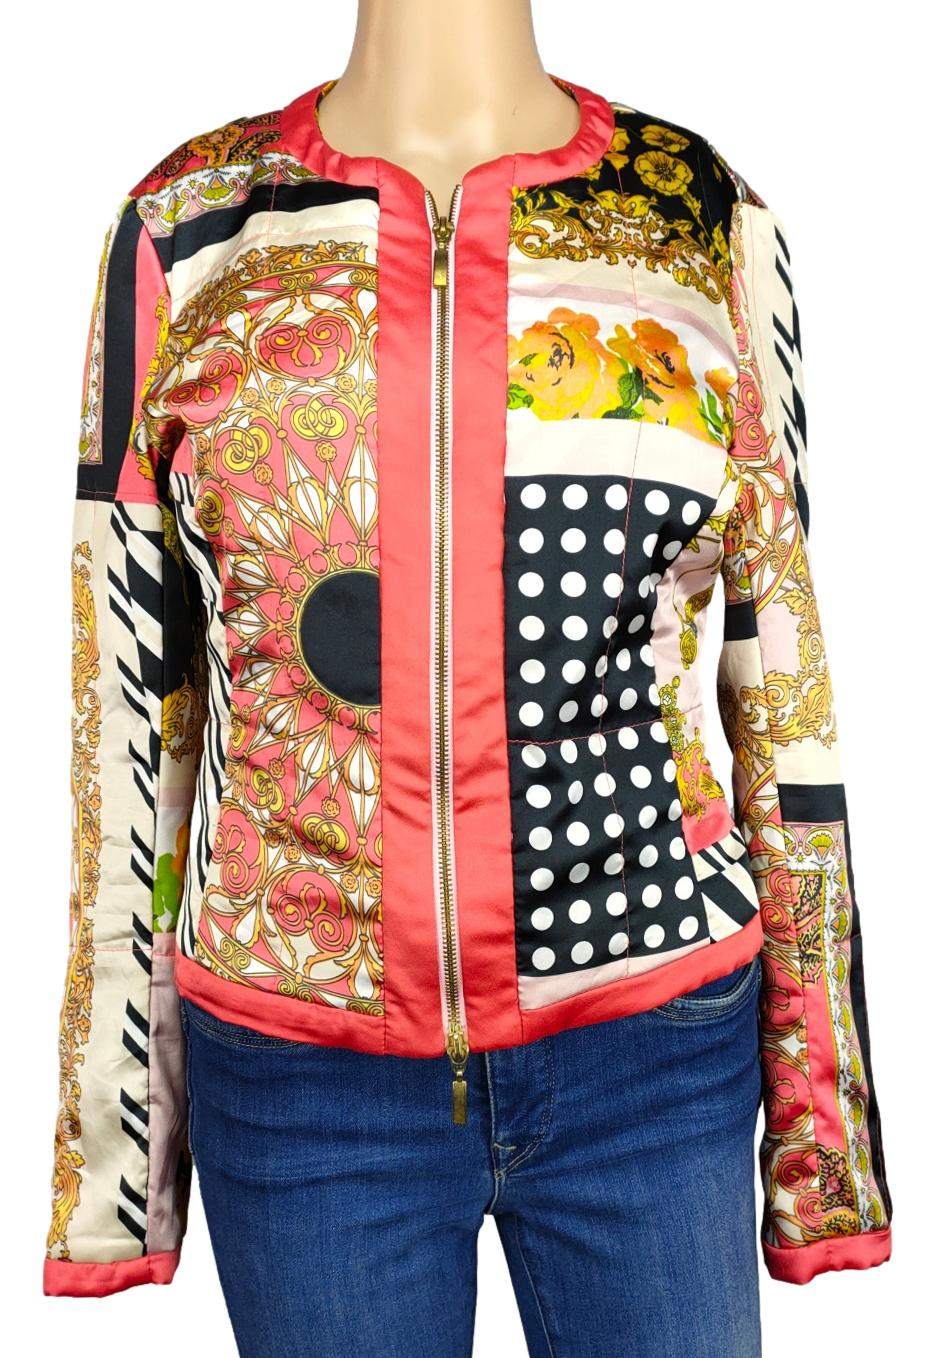 Blouson Giacca - Taille S